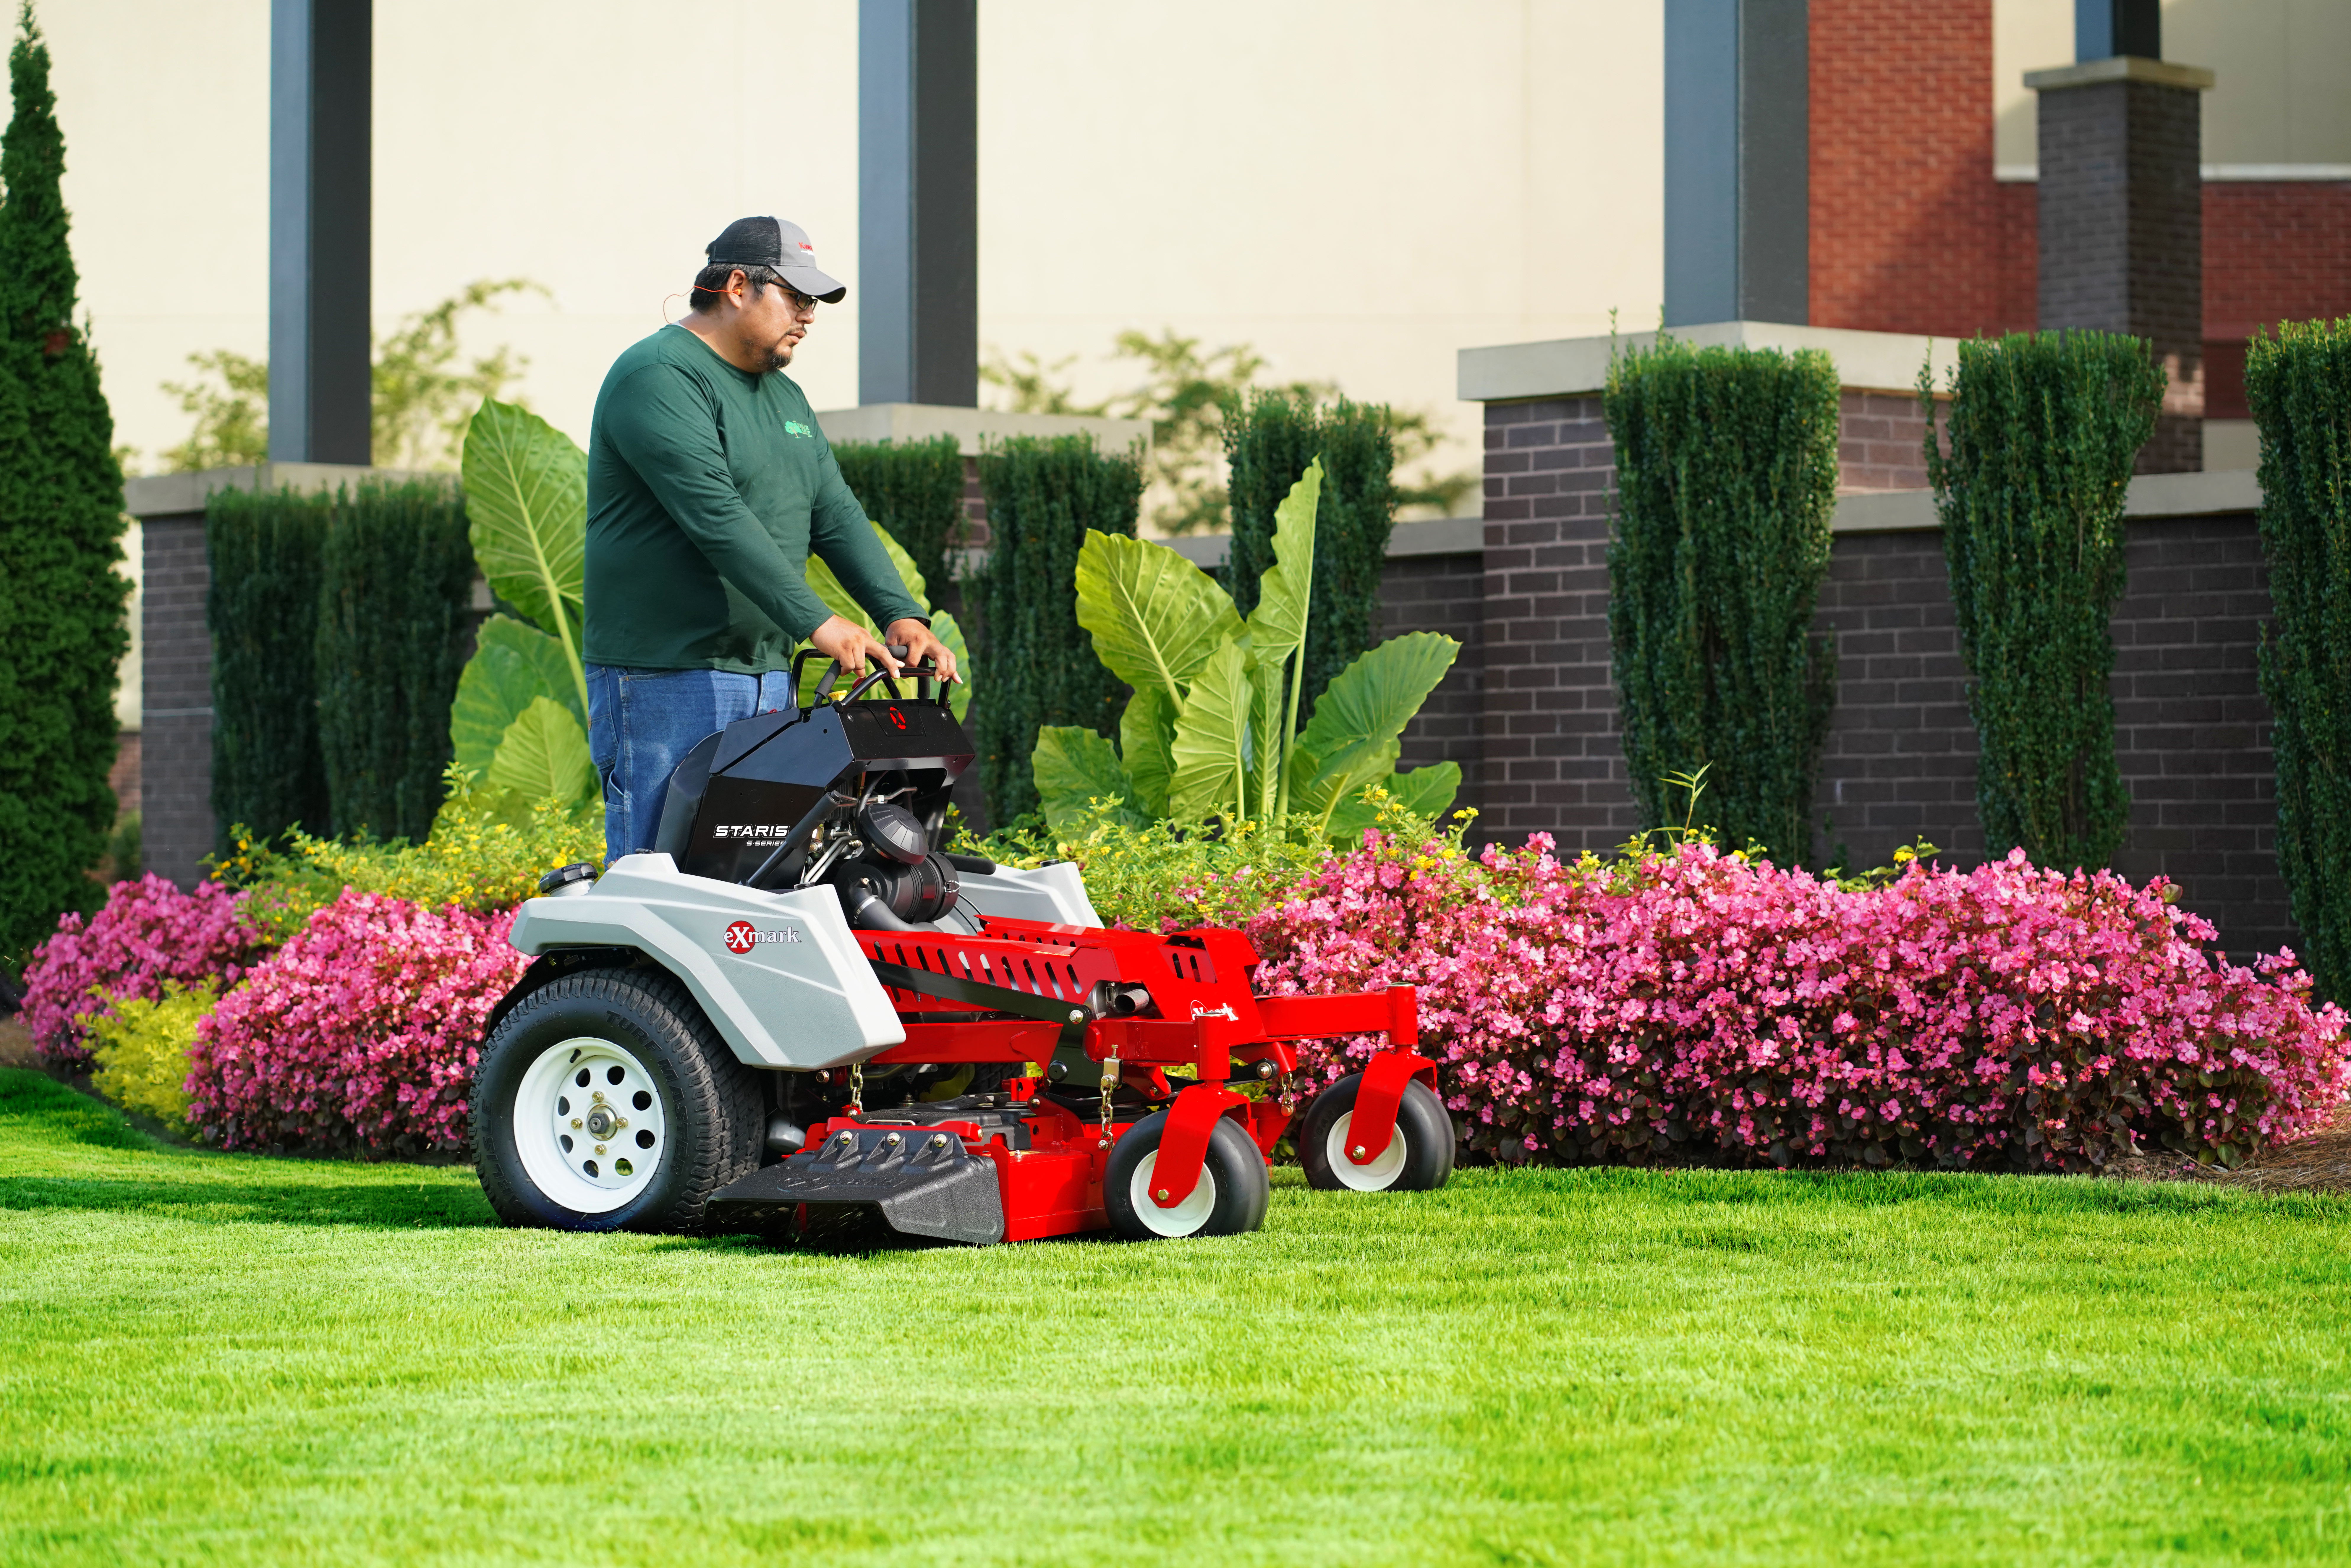 Landscaping equipment aids green industry labor shortages